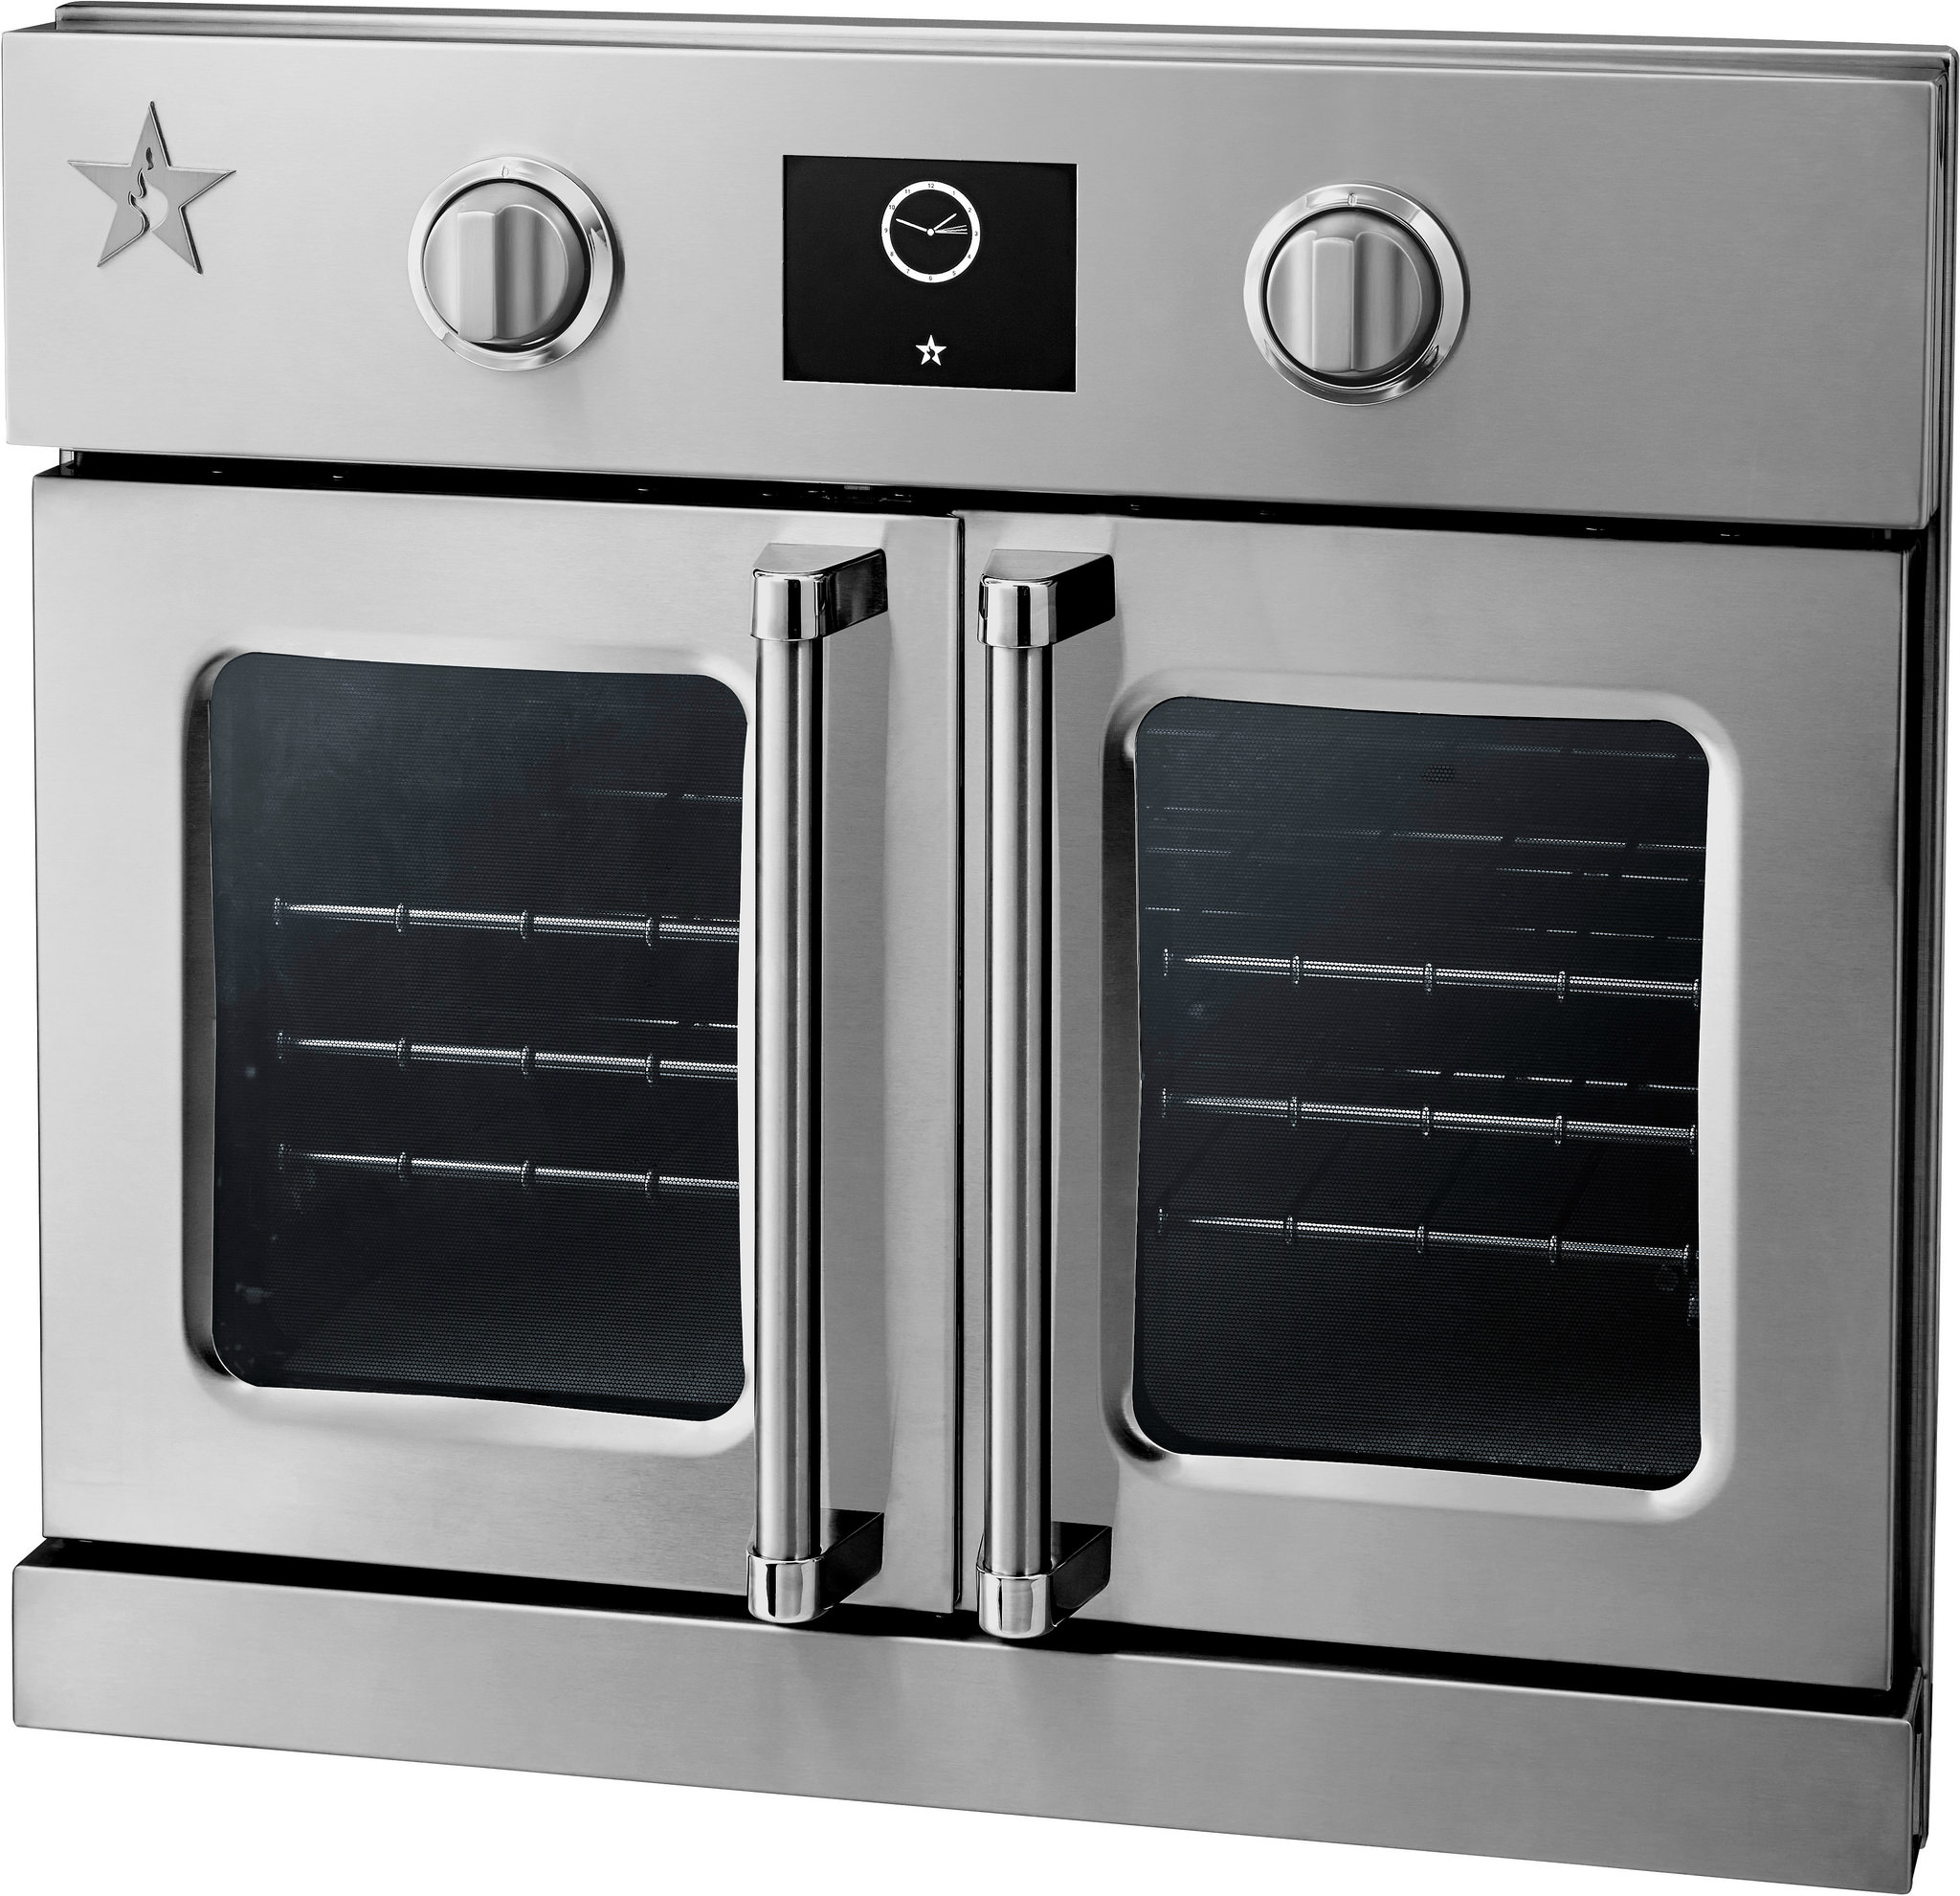 Bluestar BSEWO30ECSD 30 Inch Single Electric Wall Oven